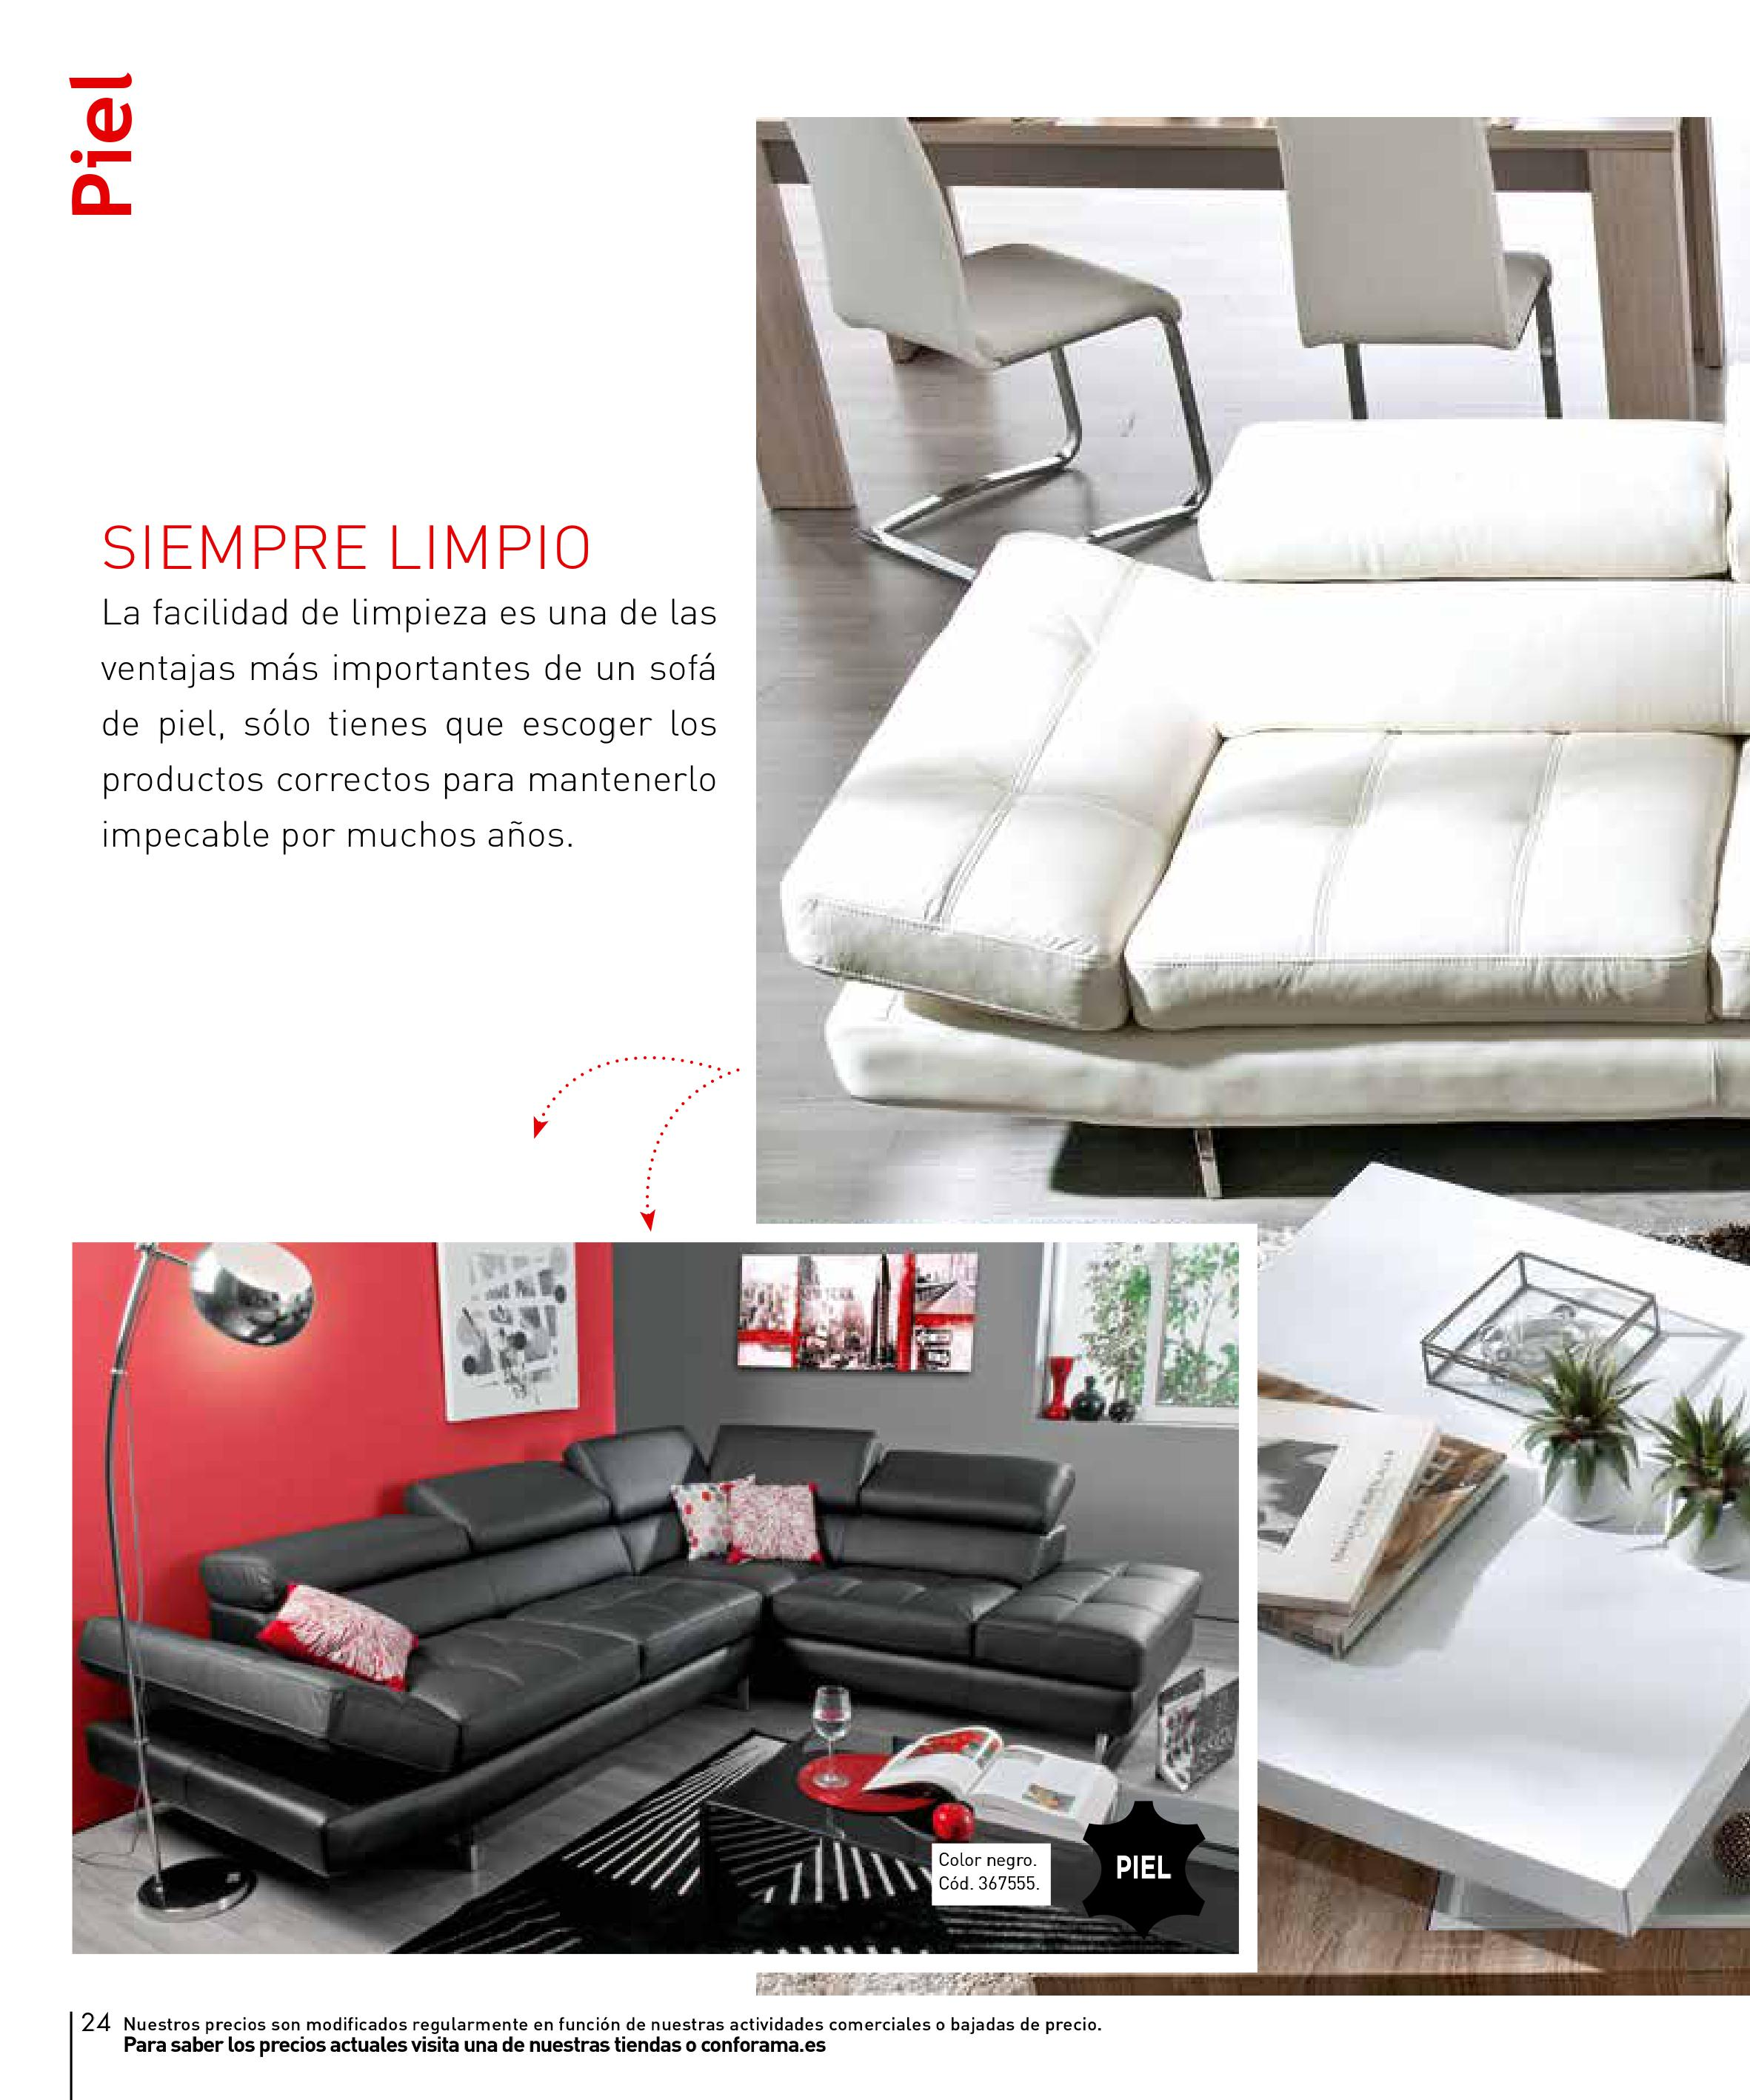 Sofas conforama 201524 for Sofas conforama catalogo